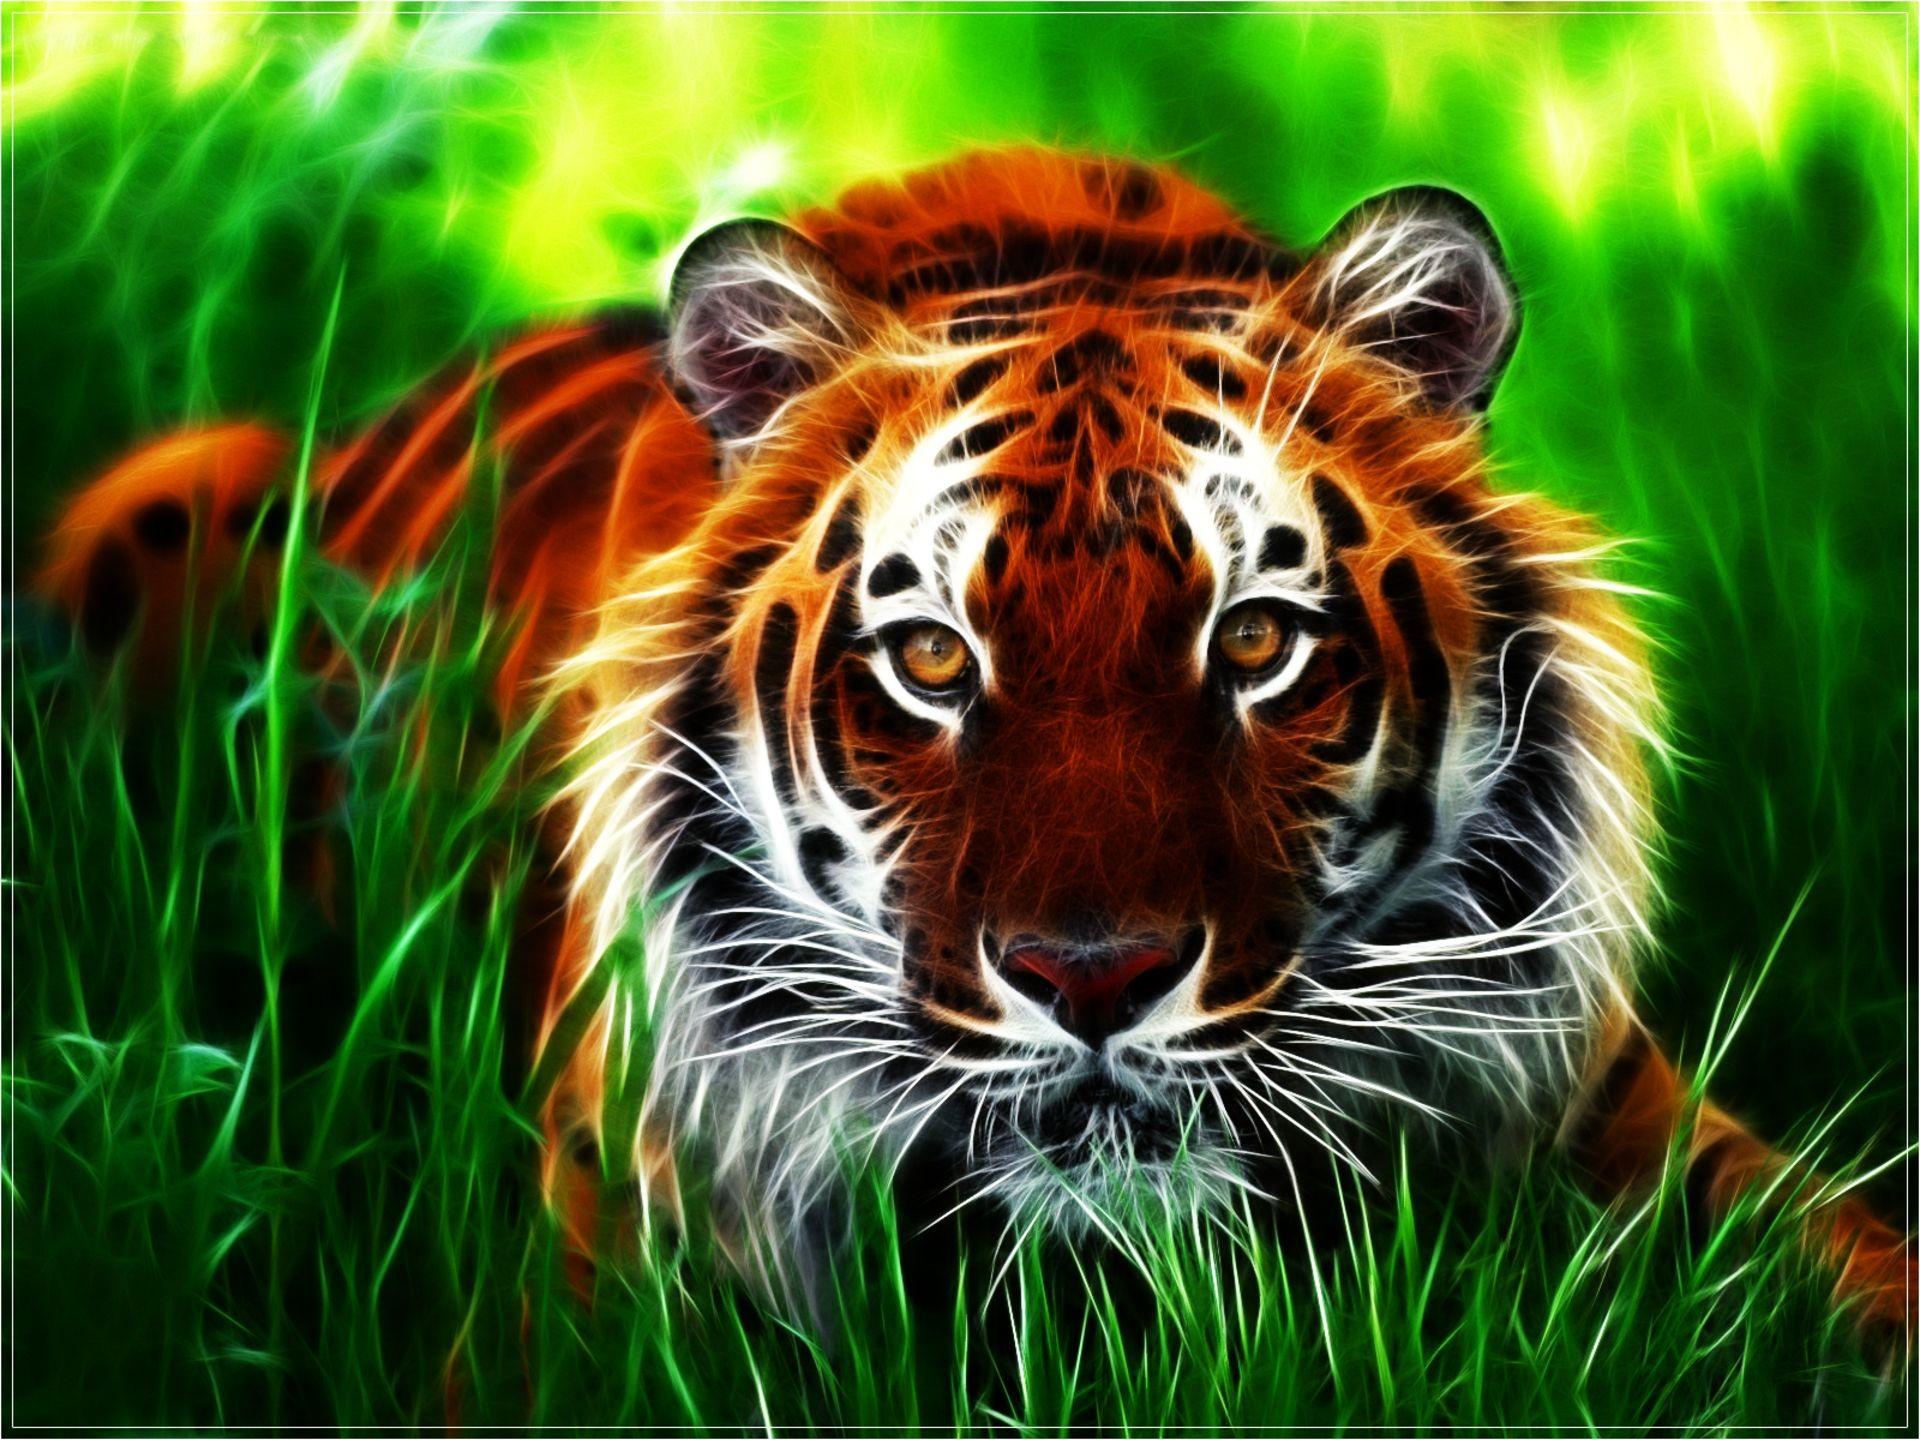 HD Wallpapers Animals   HD Wallpapers Backgrounds of Your Choice